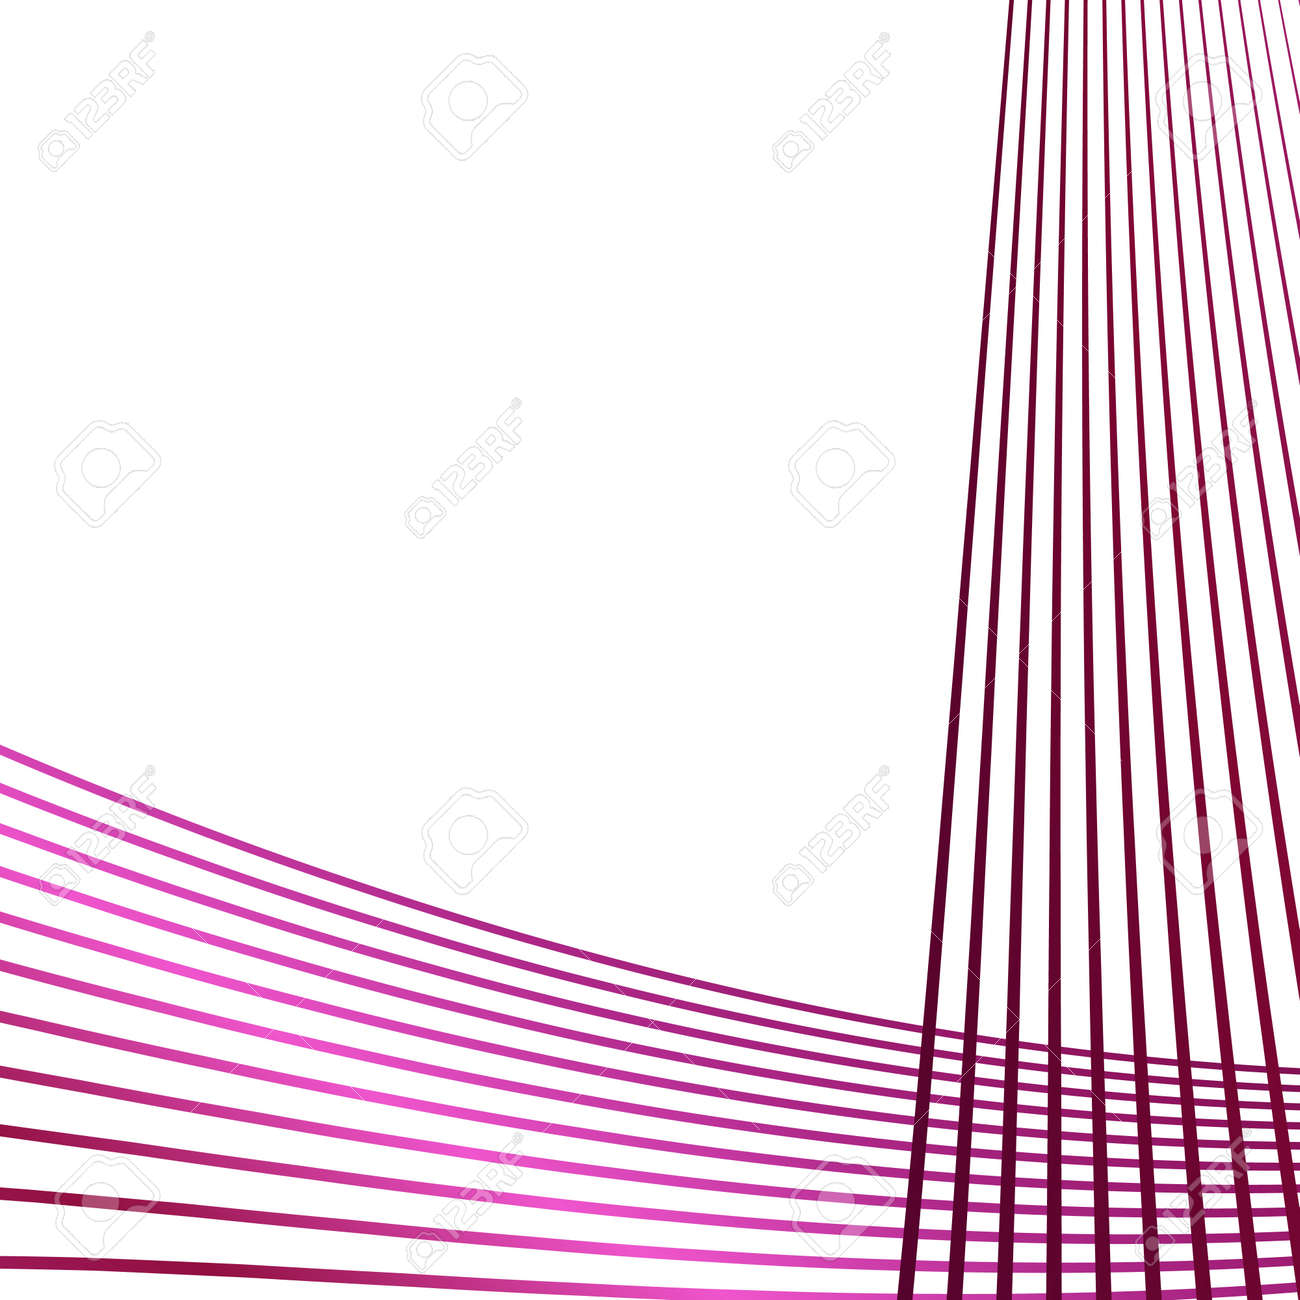 Wave of the many colored lines. Abstract wavy stripes on a white background isolated. Creative line art. Vector illustration EPS 10. Design elements created using the Blend Tool. Curved smooth tape - 157922817